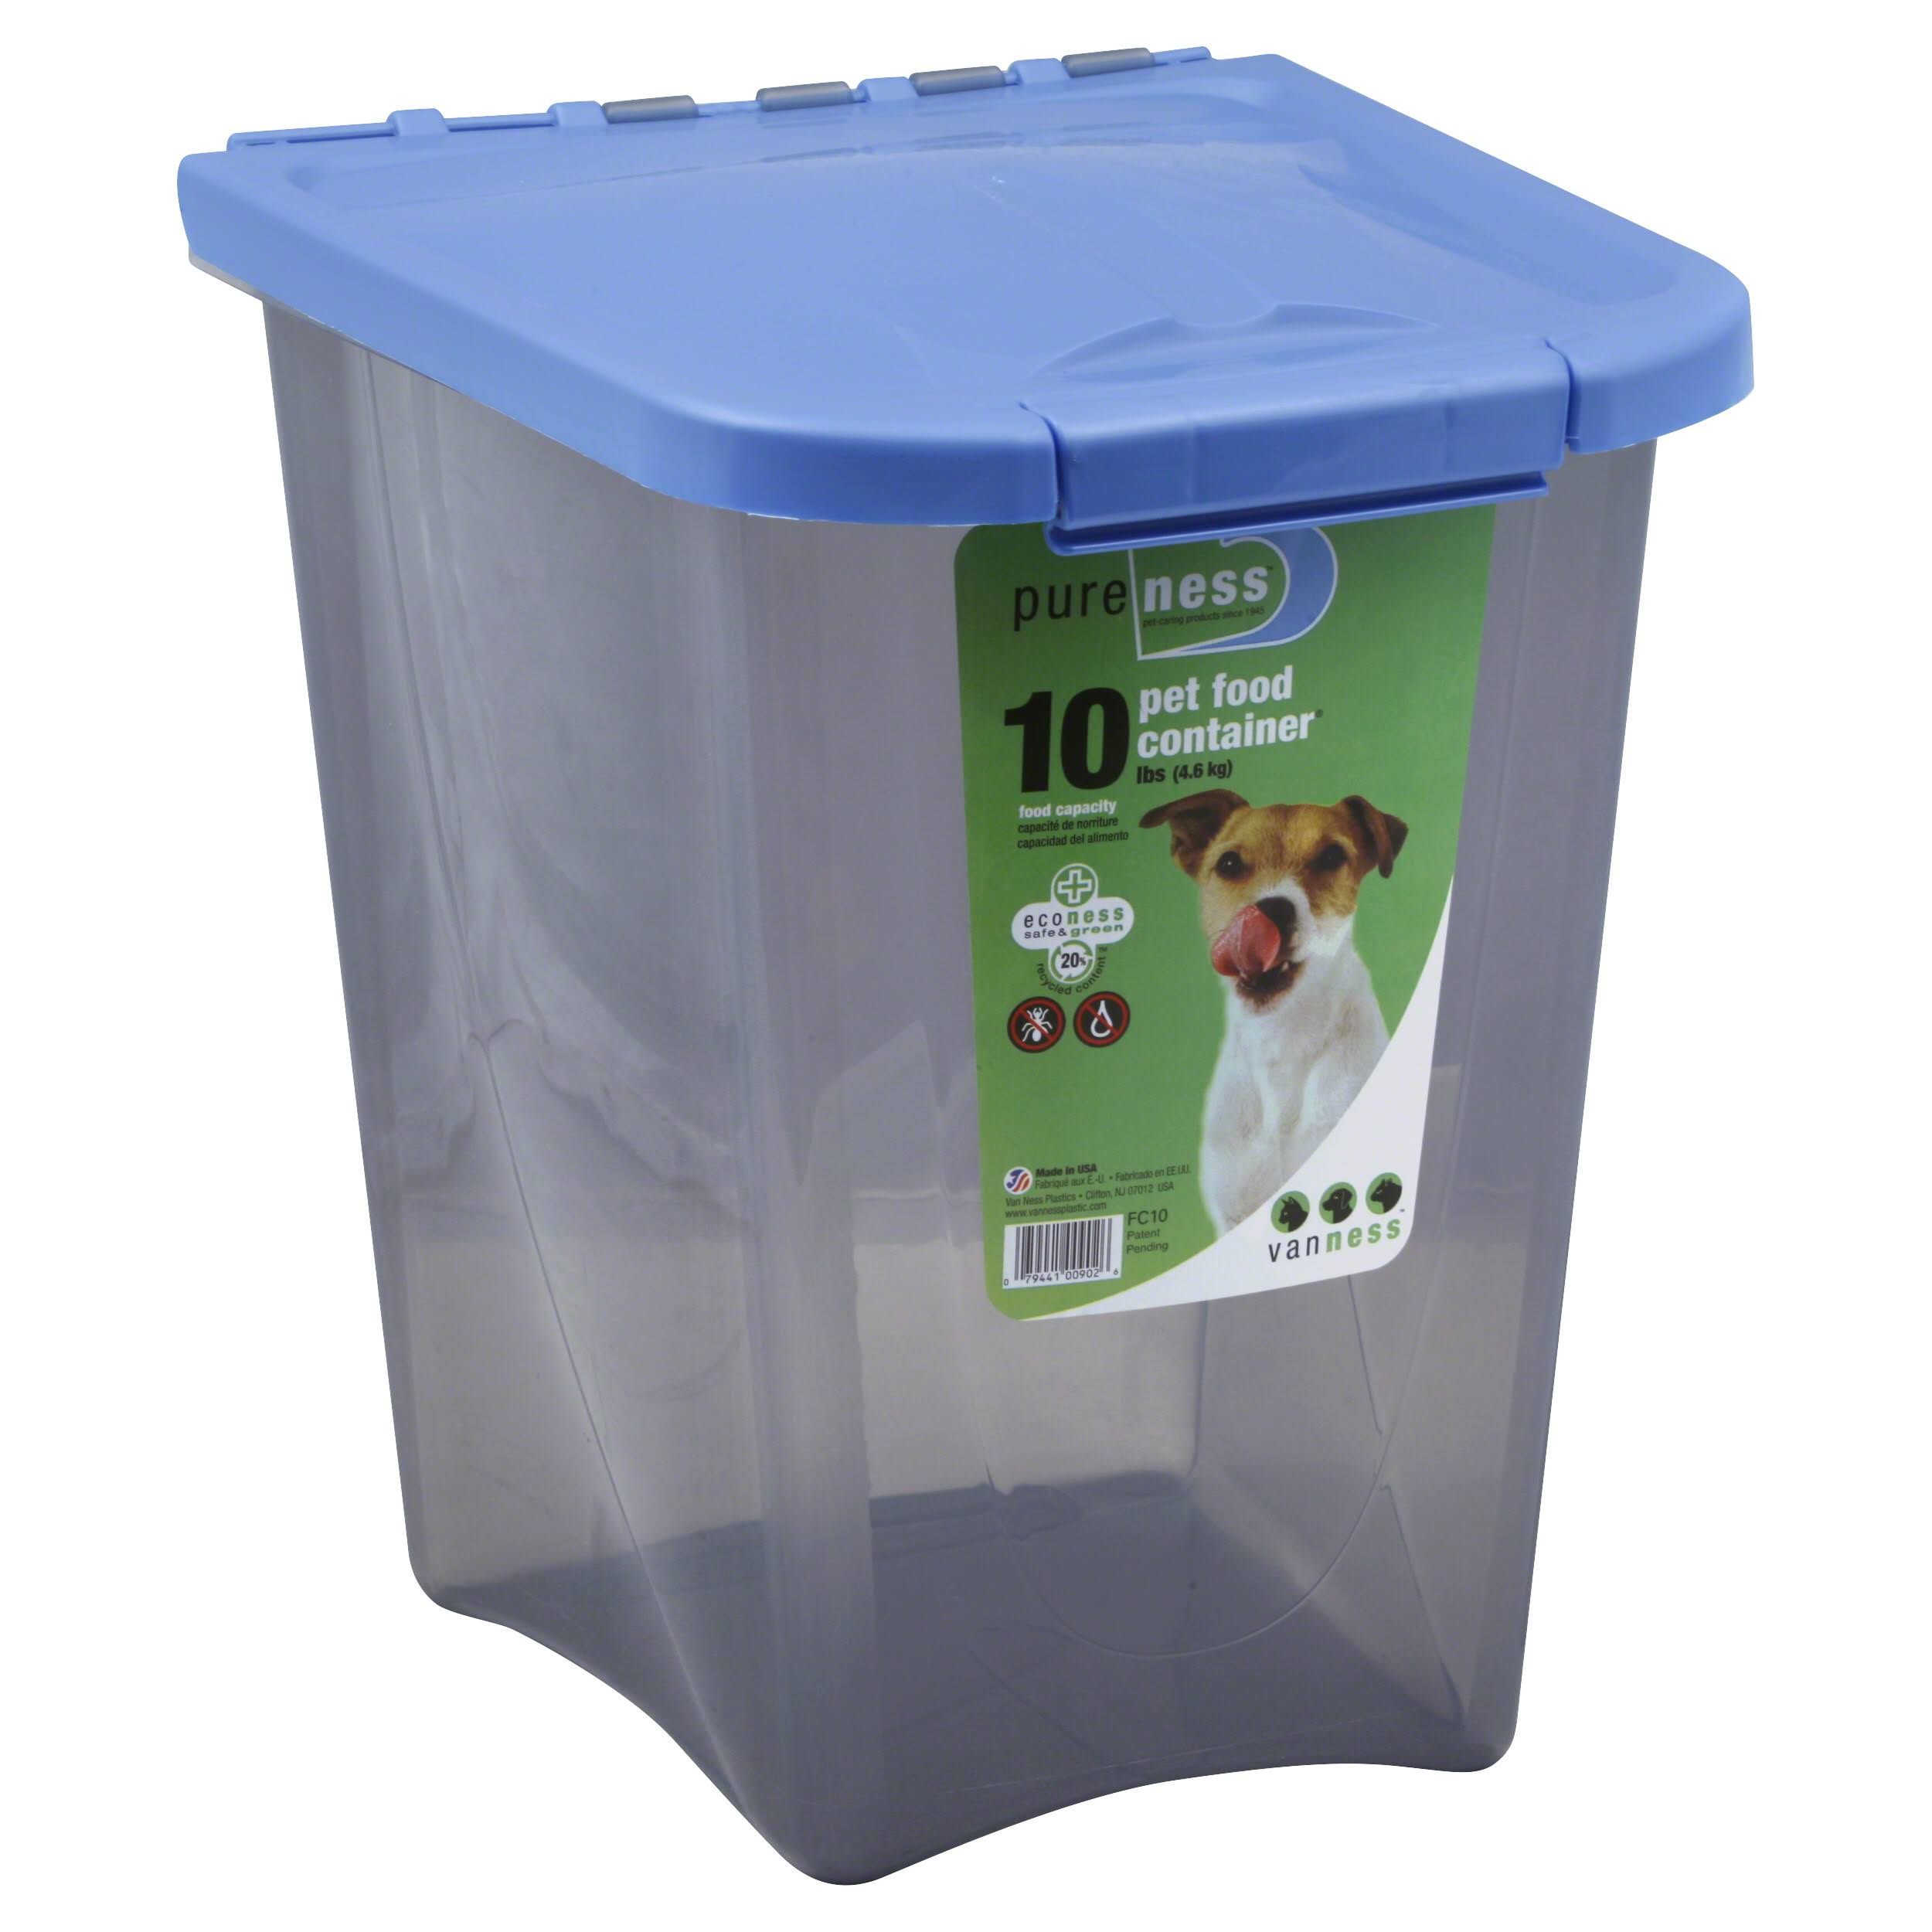 Van Ness Plastic Molding Pet Food Container - 10lb